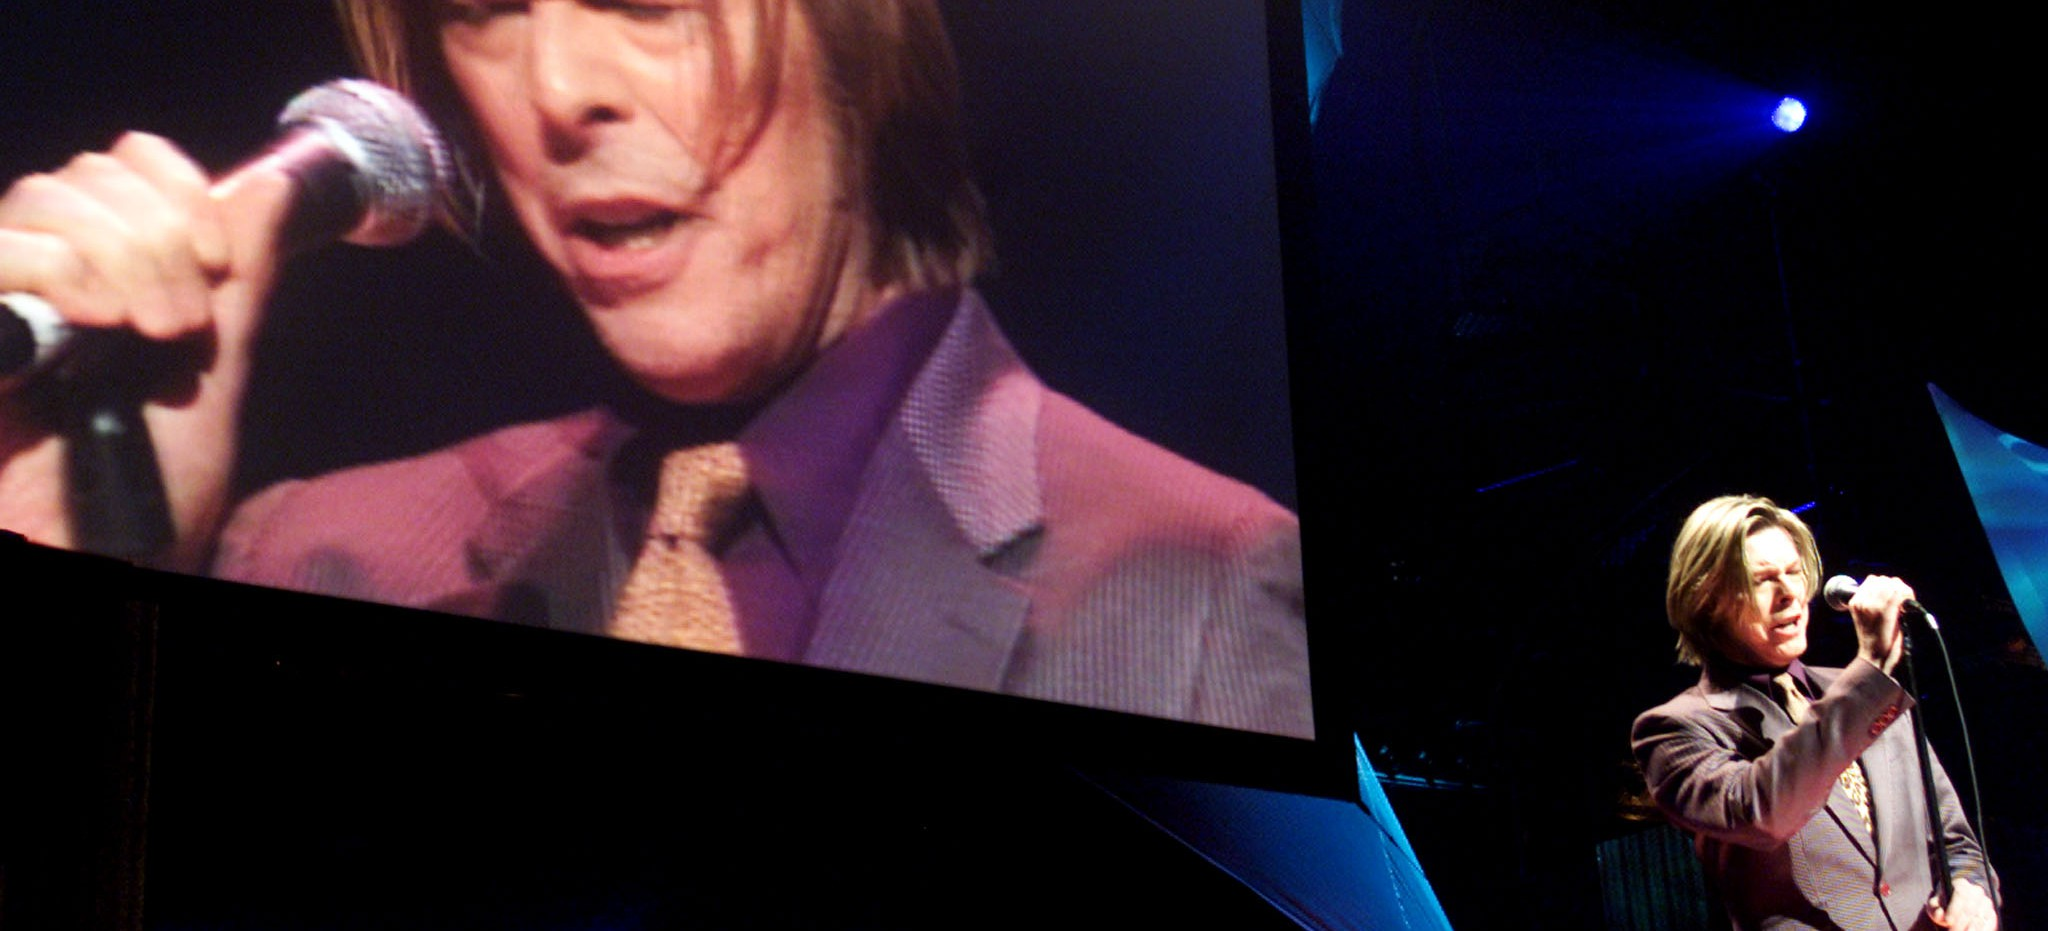 Entertainer David Bowie sings at the Yahoo! Internet Life Online Music Awards in New York July 24, 2000.  Bowie was honored with awards for the Best Official Artist Site, www.bowienet.com, and with a 2000 Online Pioneer Award at the show designed to honor the best music sites on the internet. -